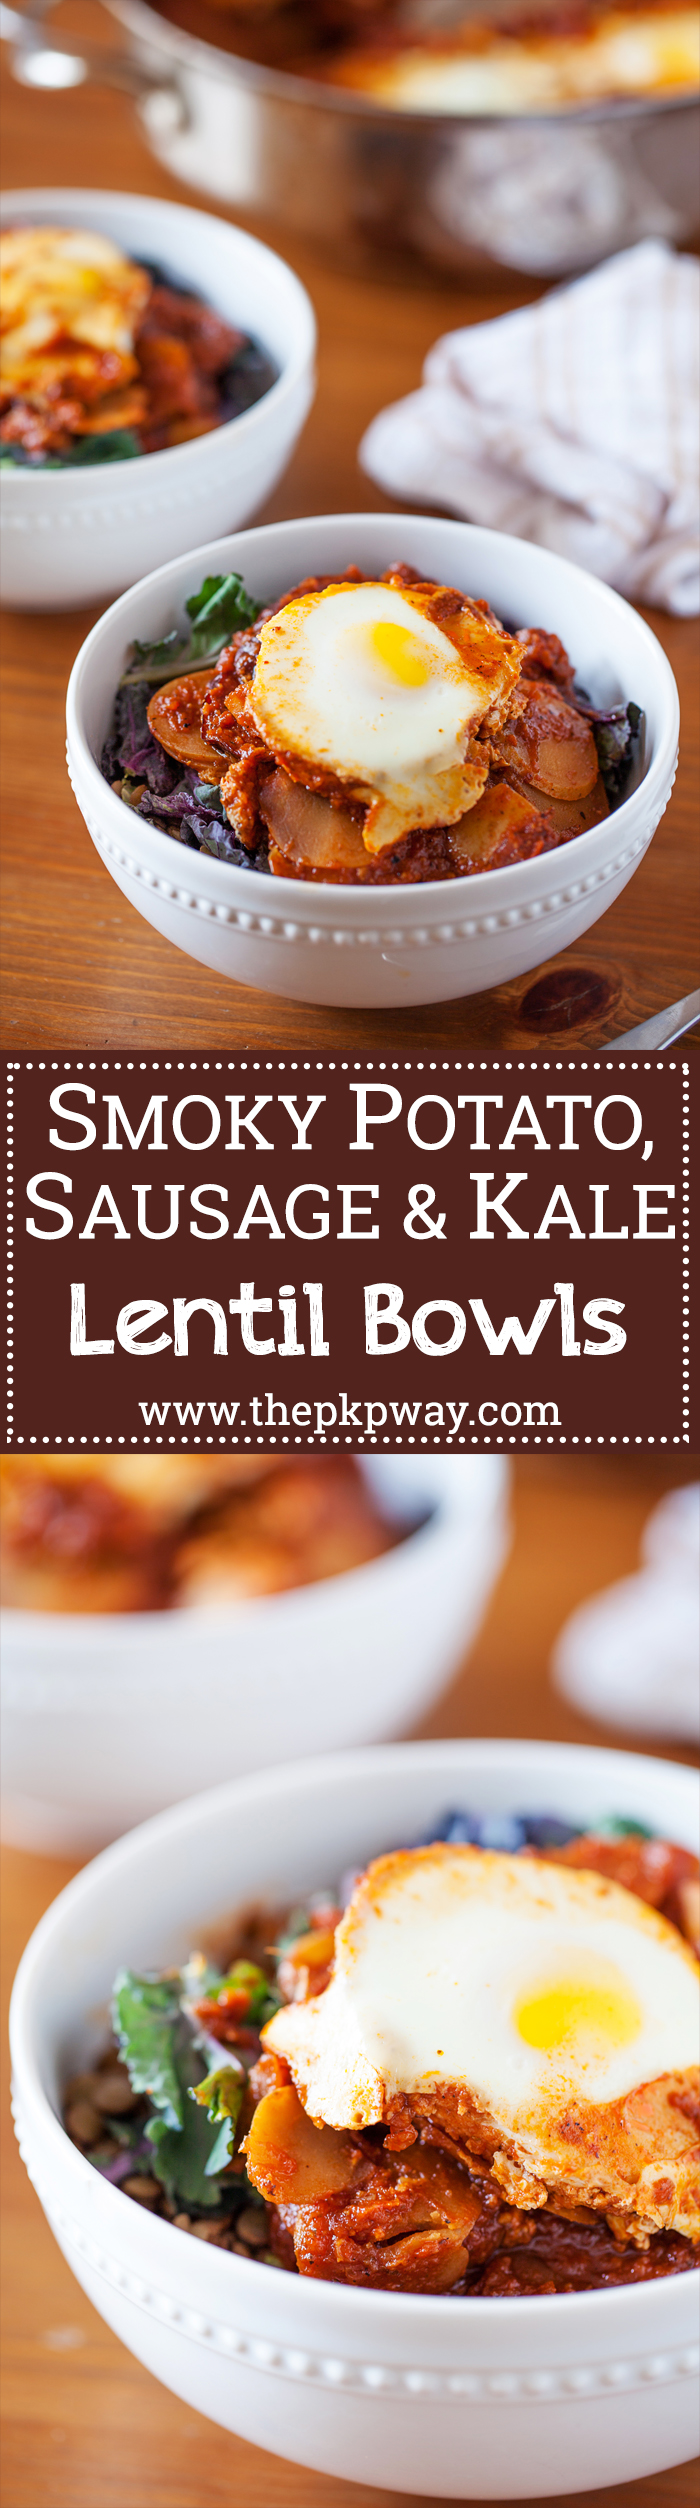 Smoky Potato, Sausage & Kale Lentil Bowl - Comforting, hearty, healthy, and cooks in one skillet!